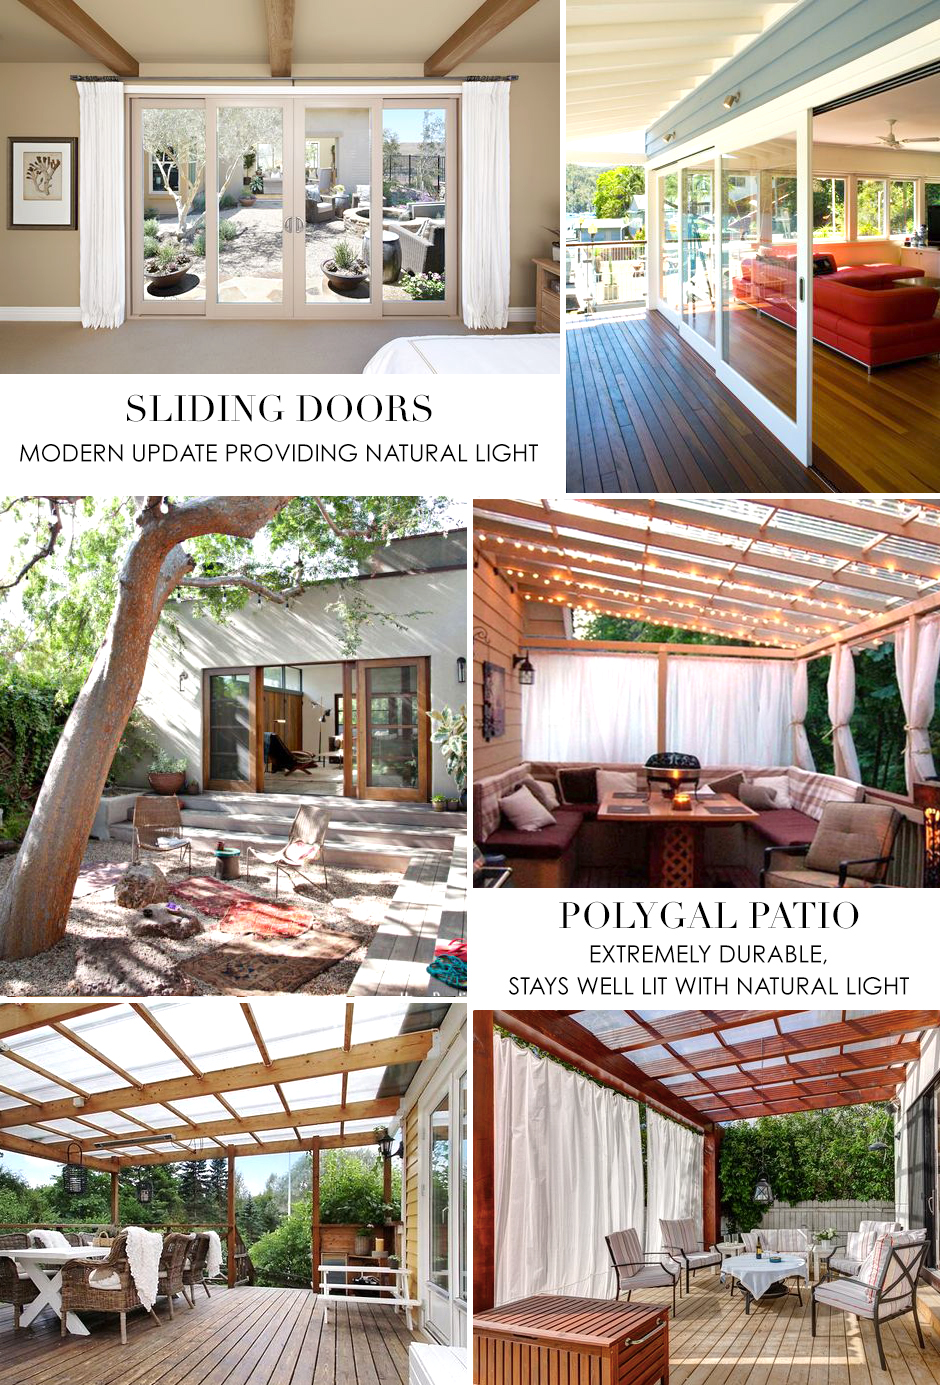 livvyland-blog-olivia-watson-home-decor-update-polygal-patio-ideas-sliding-patio-doors-floor-ceiling-glass-panels